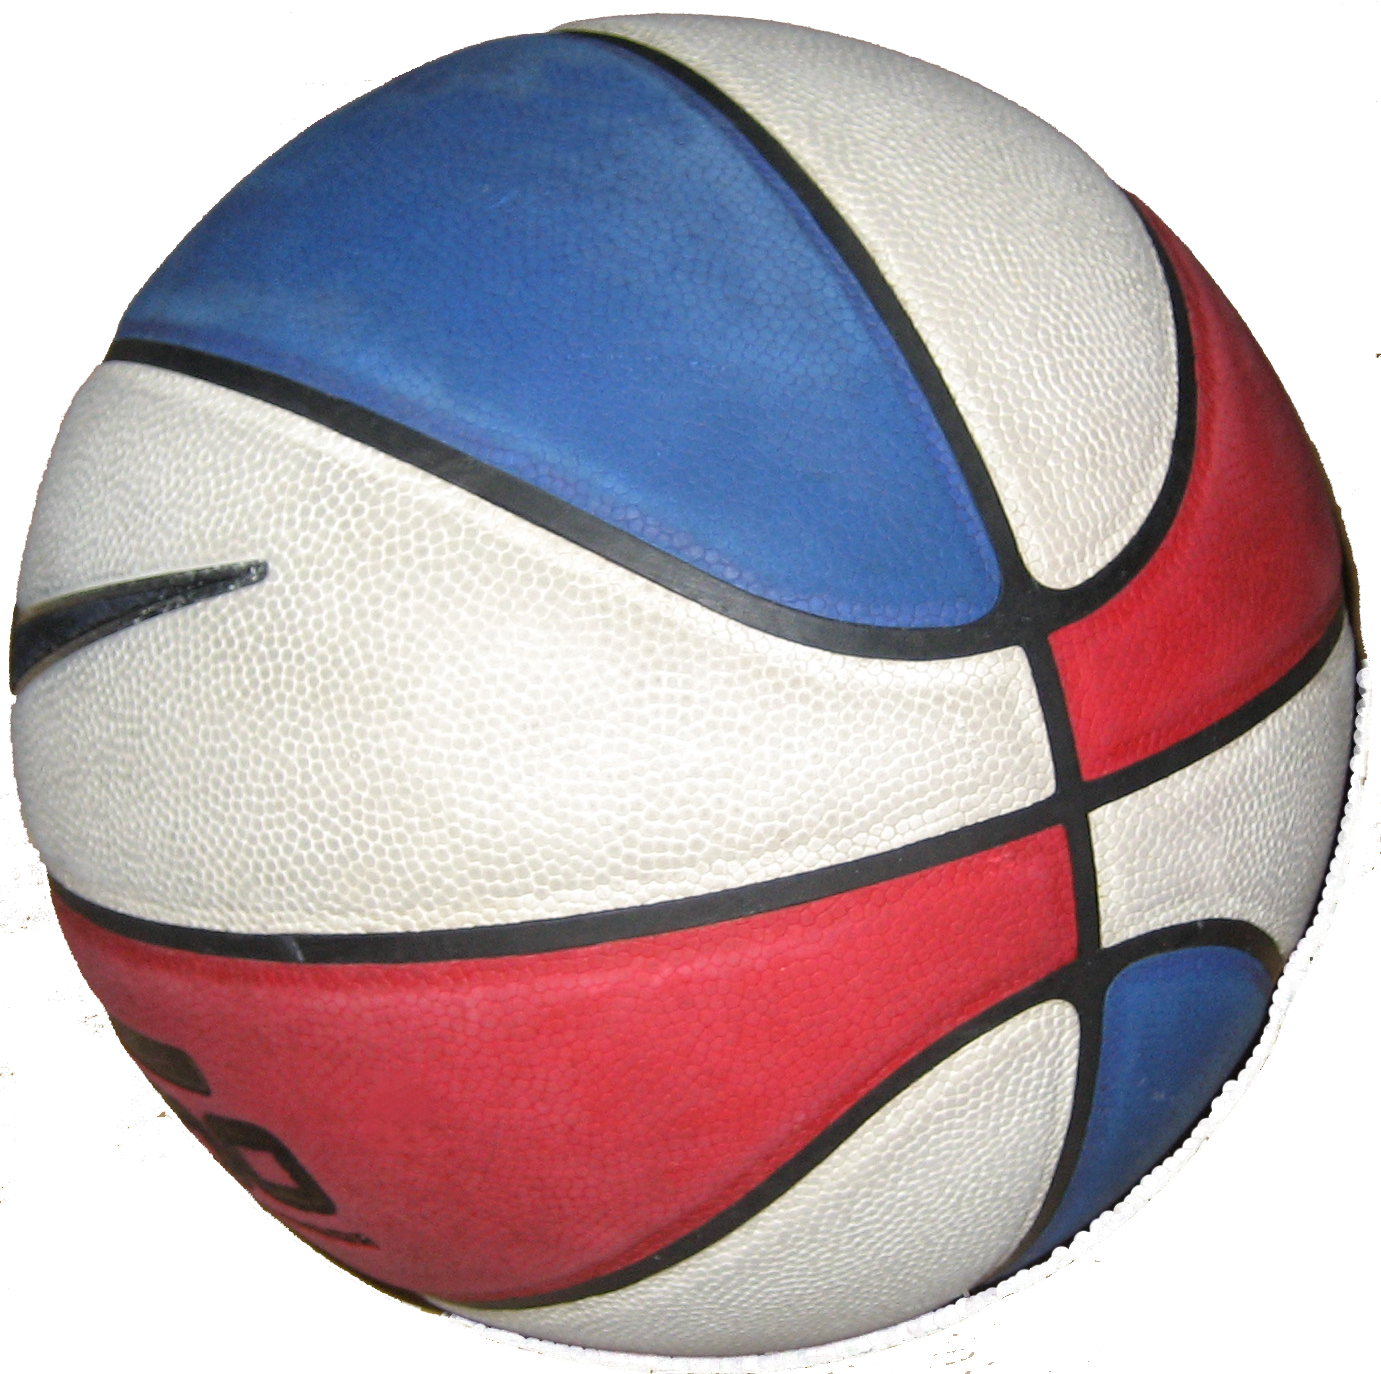 Volleyball and basketball clipart clip art transparent Basketball Transparent PNG Pictures - Free Icons and PNG Backgrounds clip art transparent